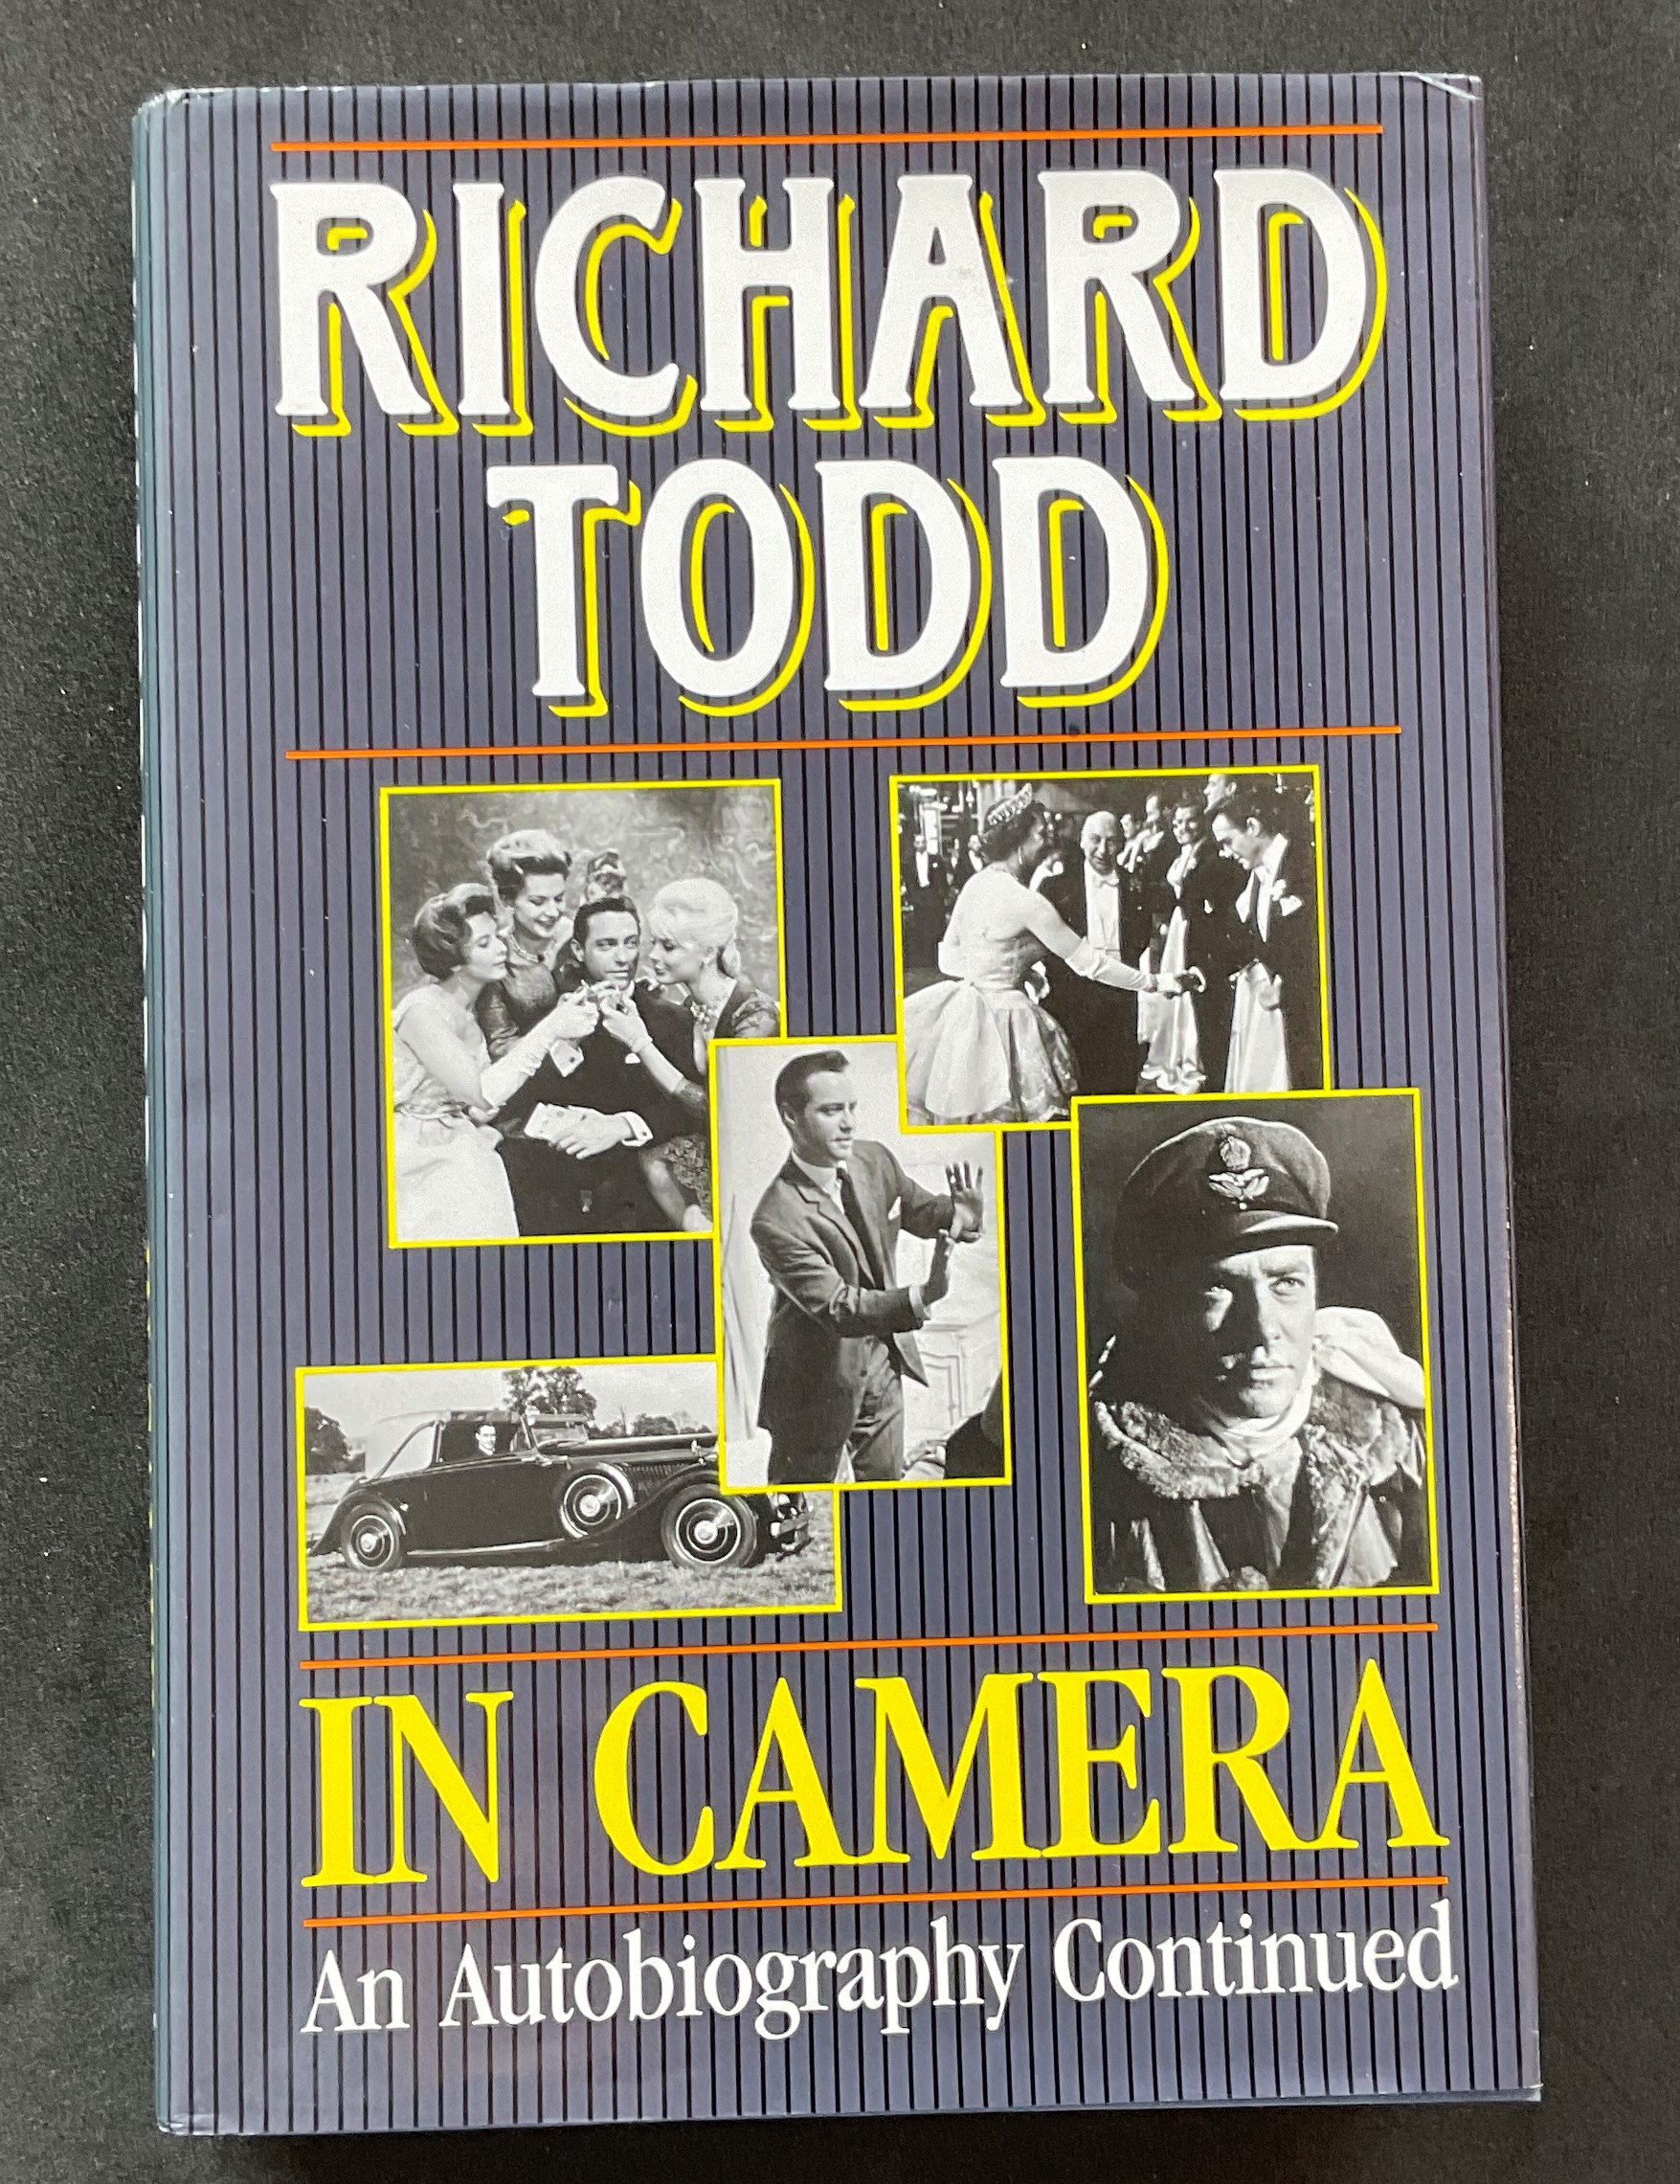 Actor Richard Todd's autobiography In Camera, signed, with nice inscription, dedicated to Pat and